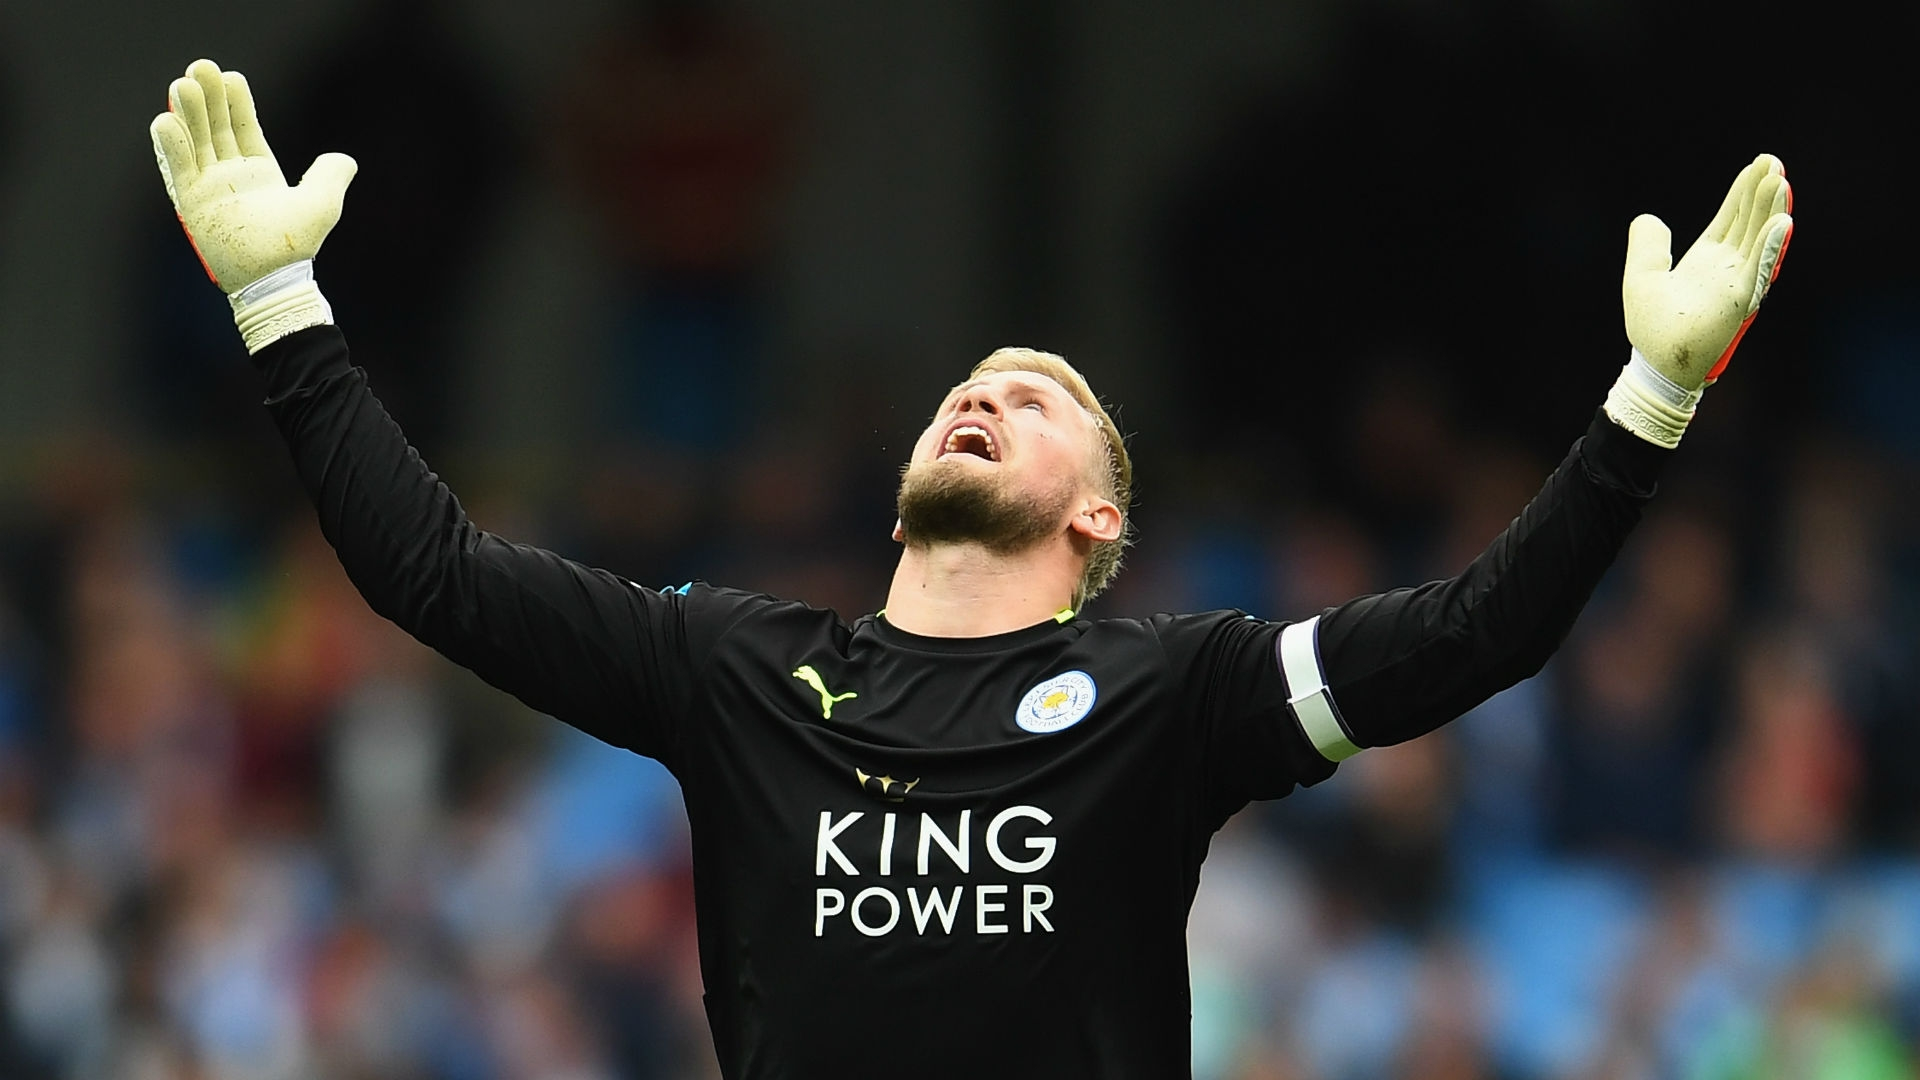 Kasper Schmeichel has impressed as Leicester City's first choice for the goalkeeper position